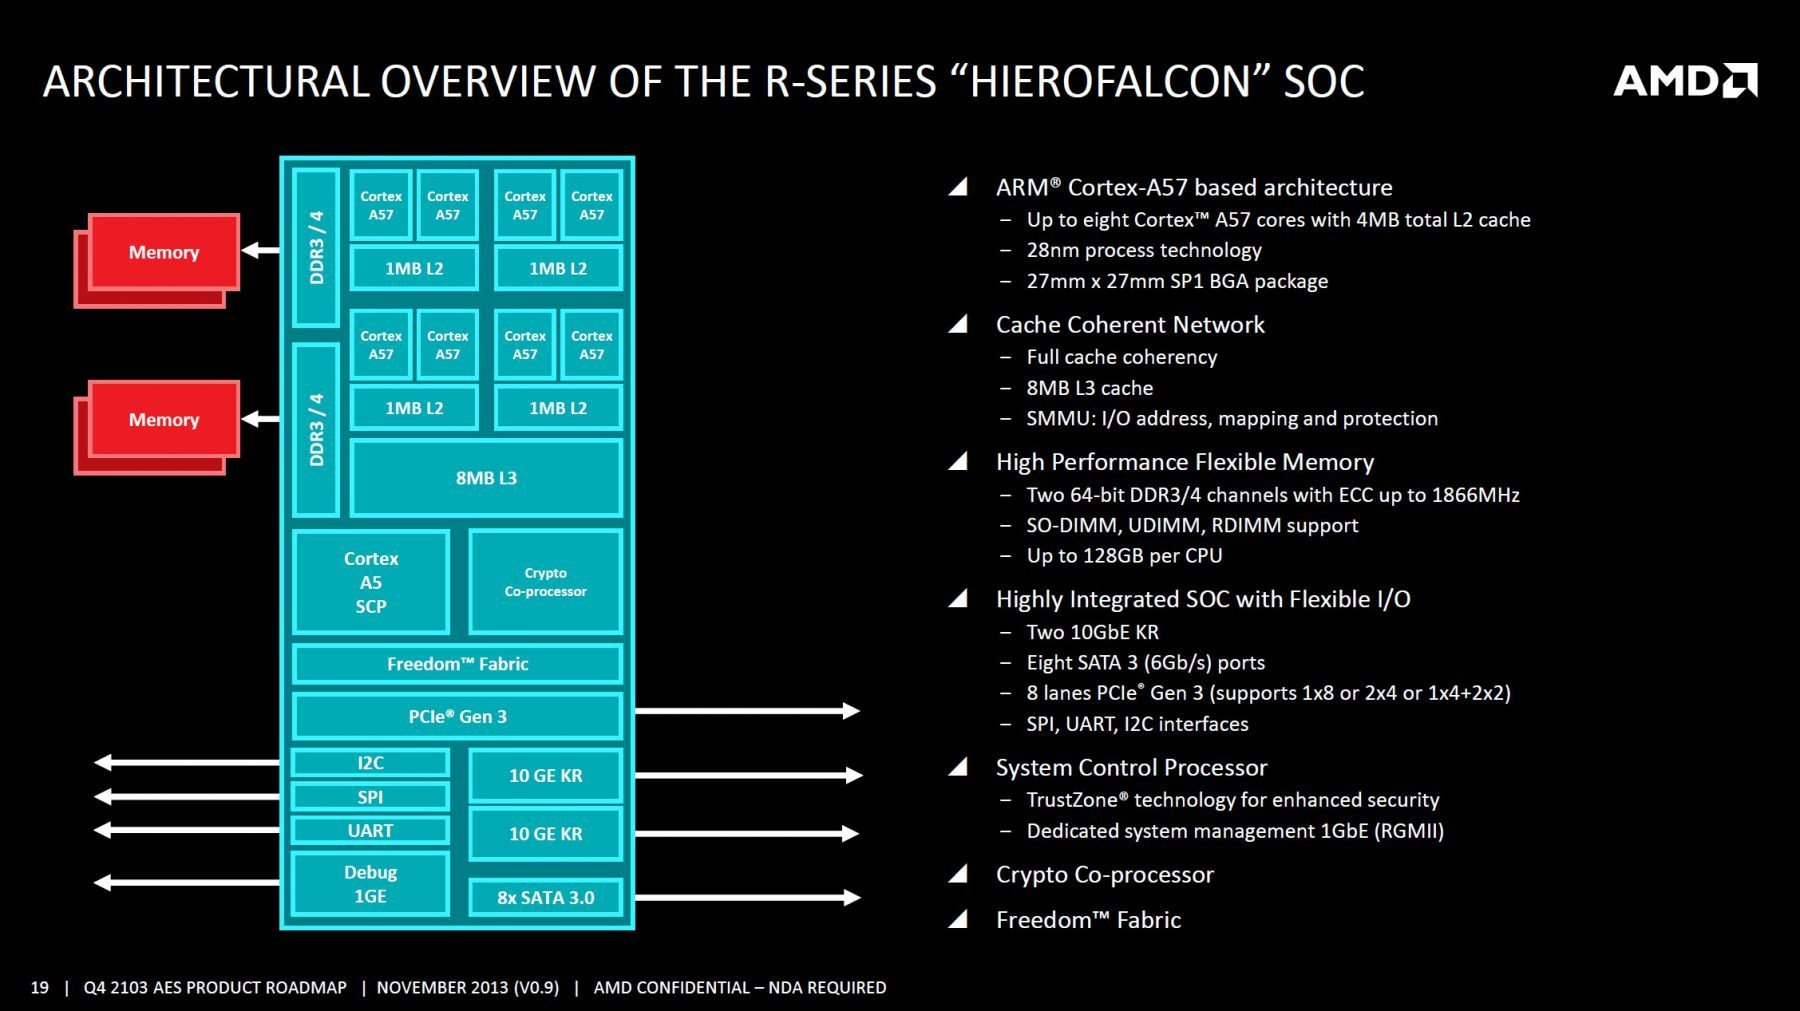 AMD-R-Series-Hierofalcon-SOC